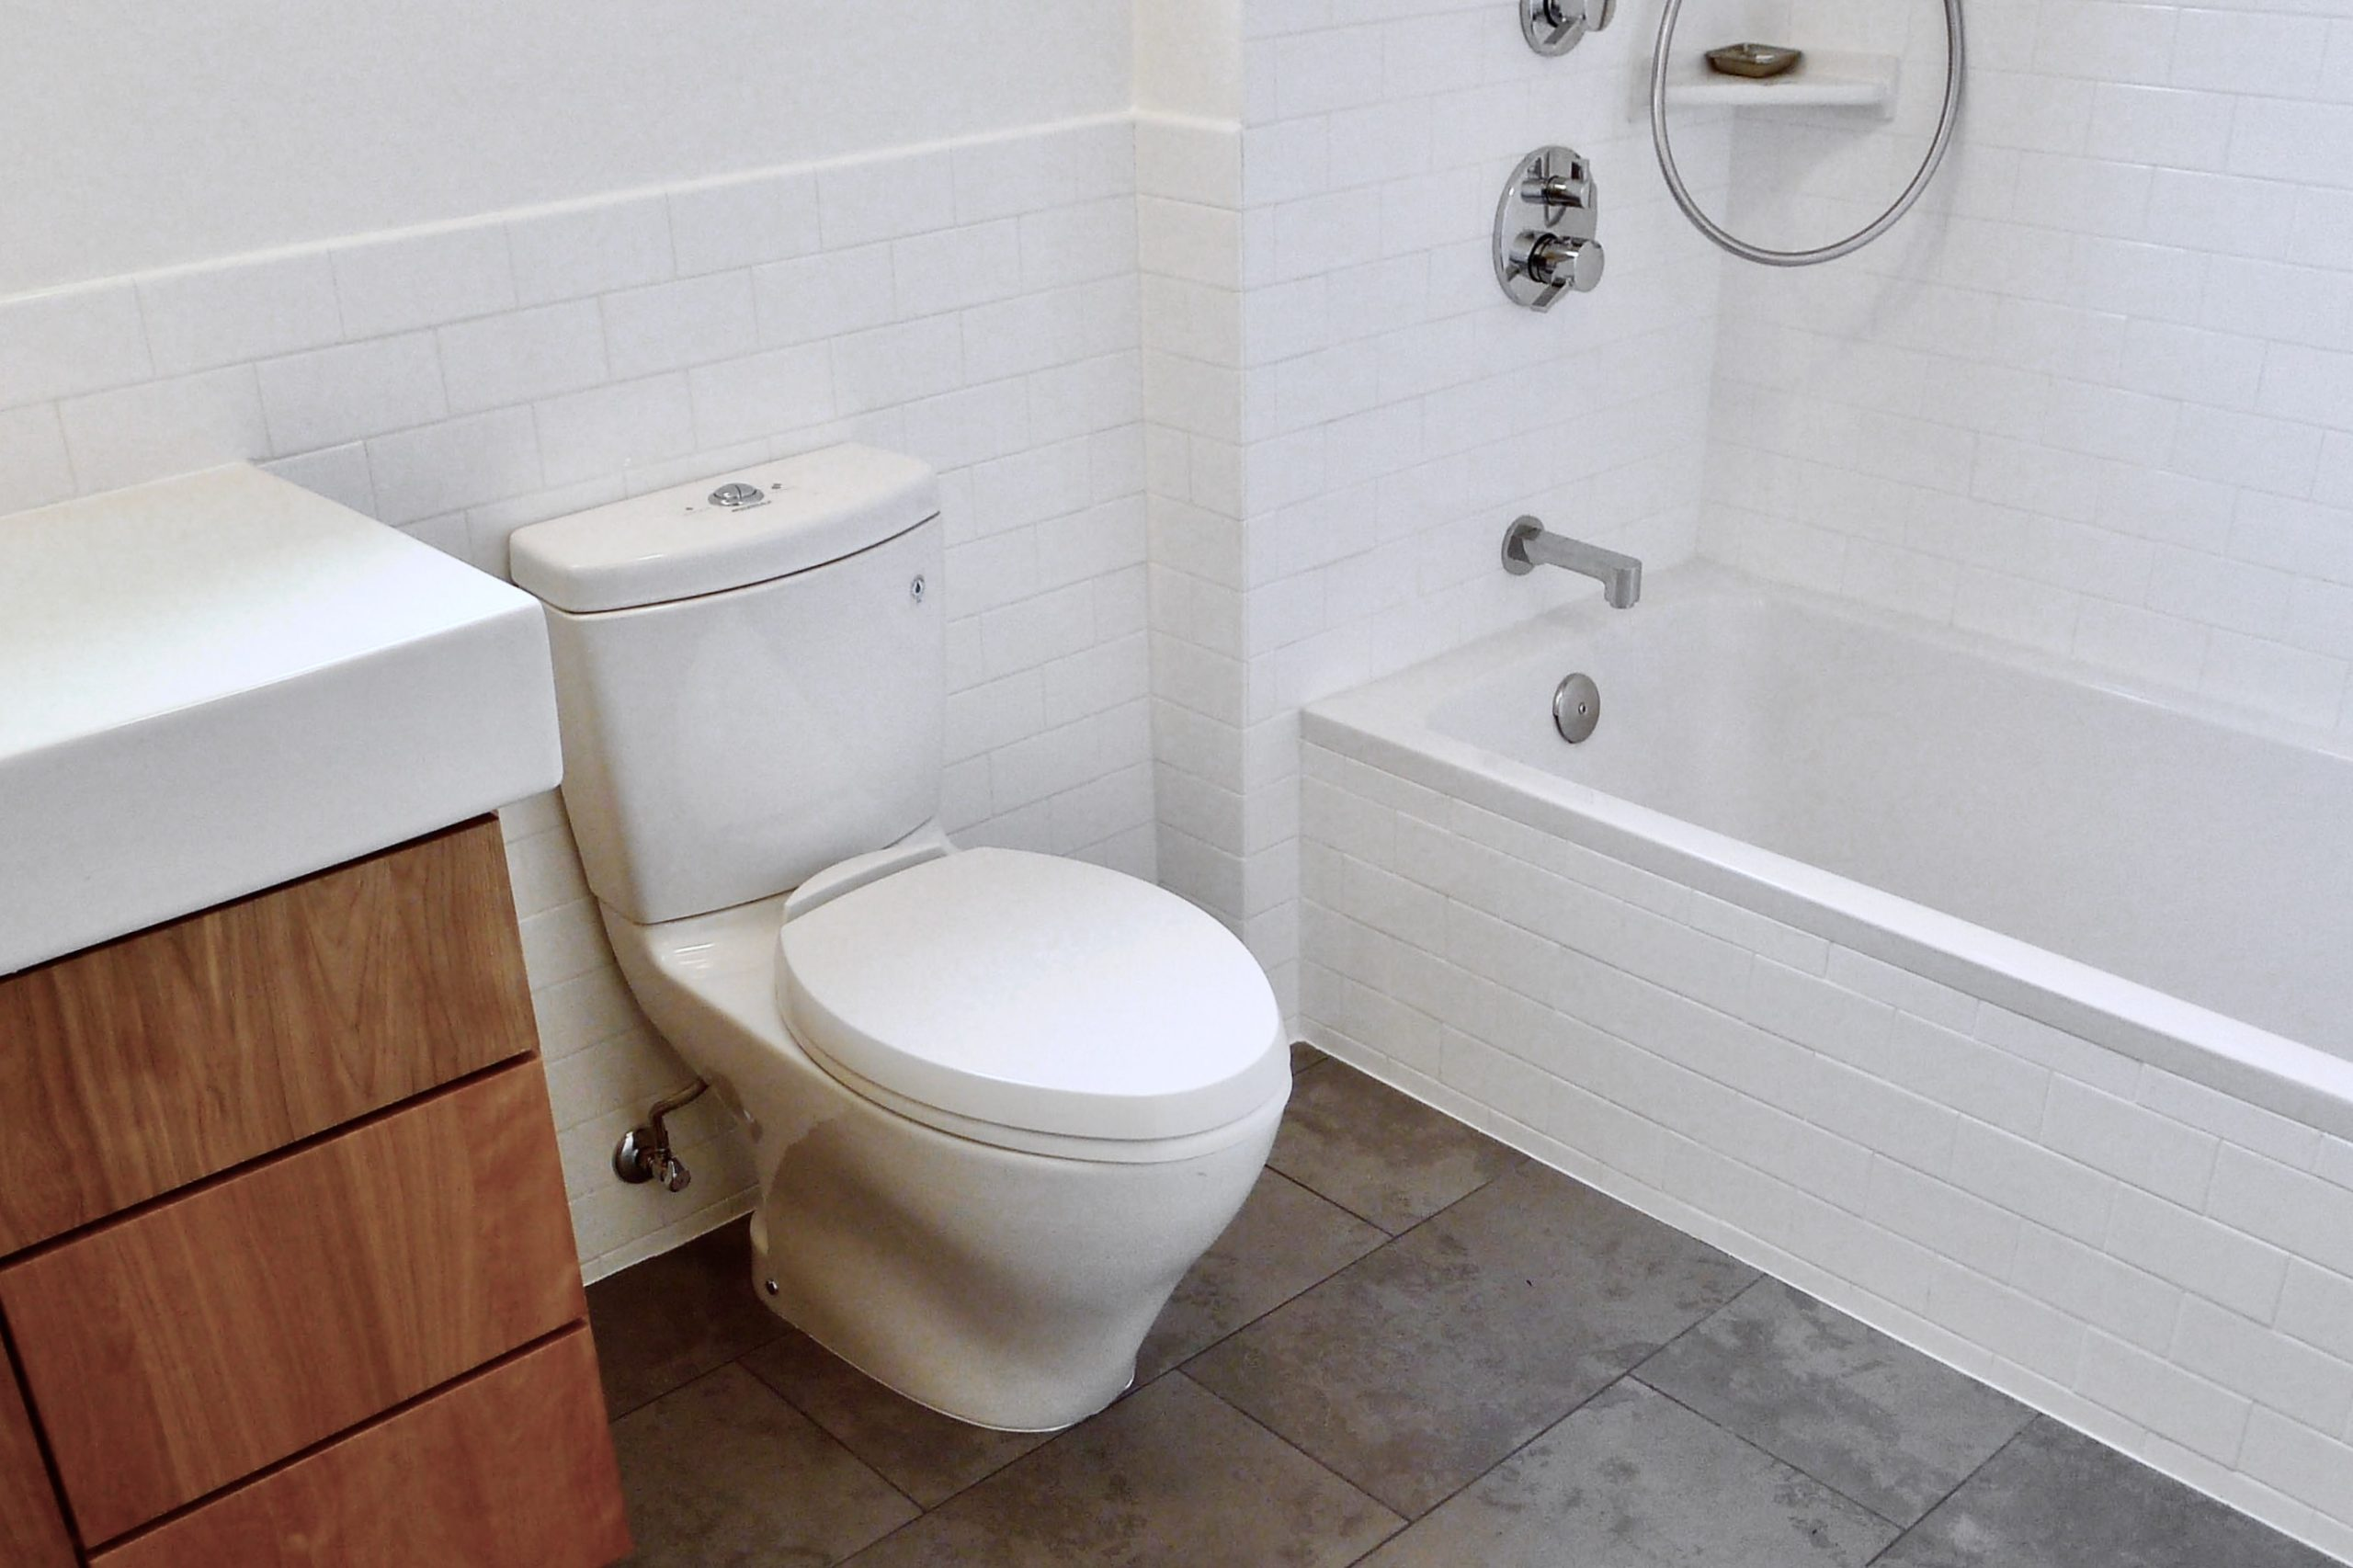 Bathroom Remodeling Pace Builders Bay Area Construction And Remodeling Contractor